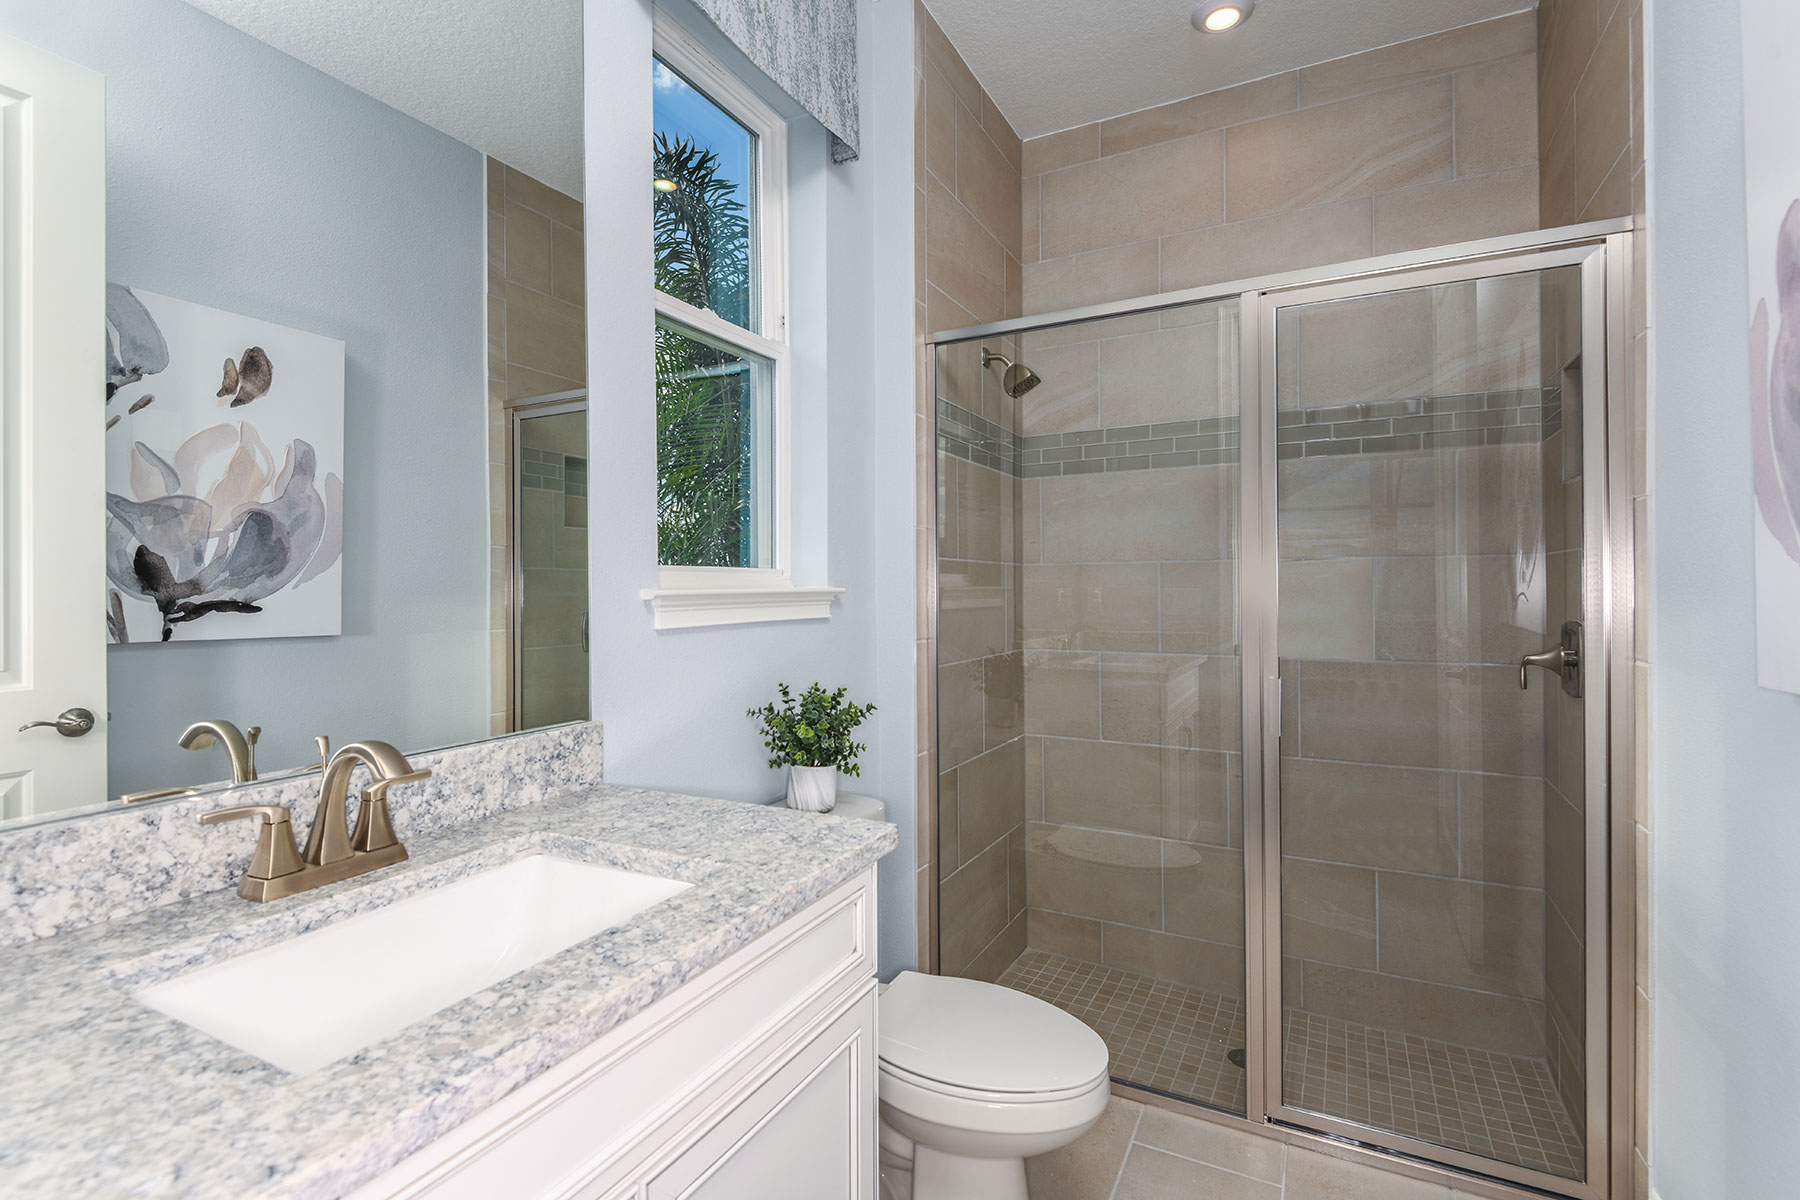 Myrtle Plan Bath at Parkview at Long Lake Ranch in Lutz Florida by Mattamy Homes